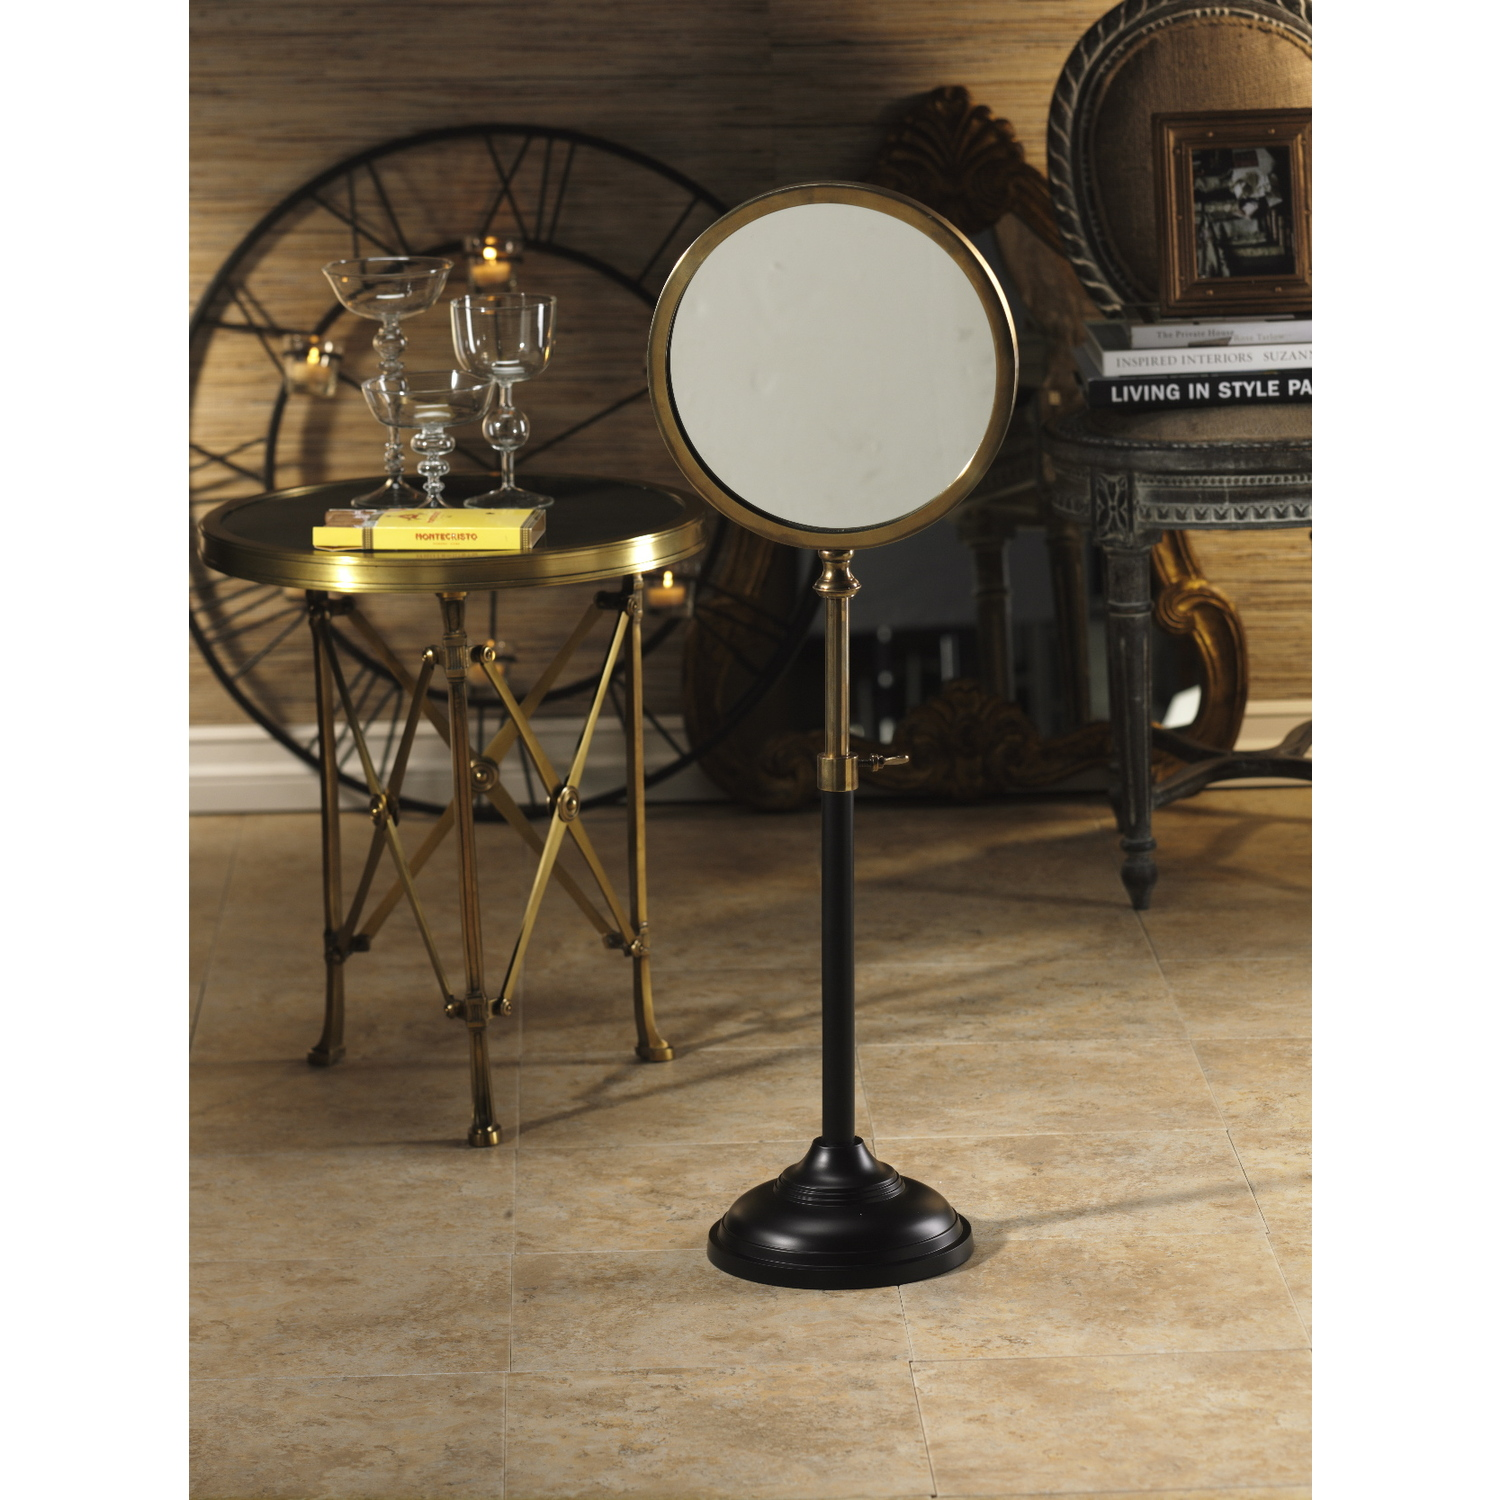 zodax telescoping table mirror on stand by oj commerce in 4920. Black Bedroom Furniture Sets. Home Design Ideas